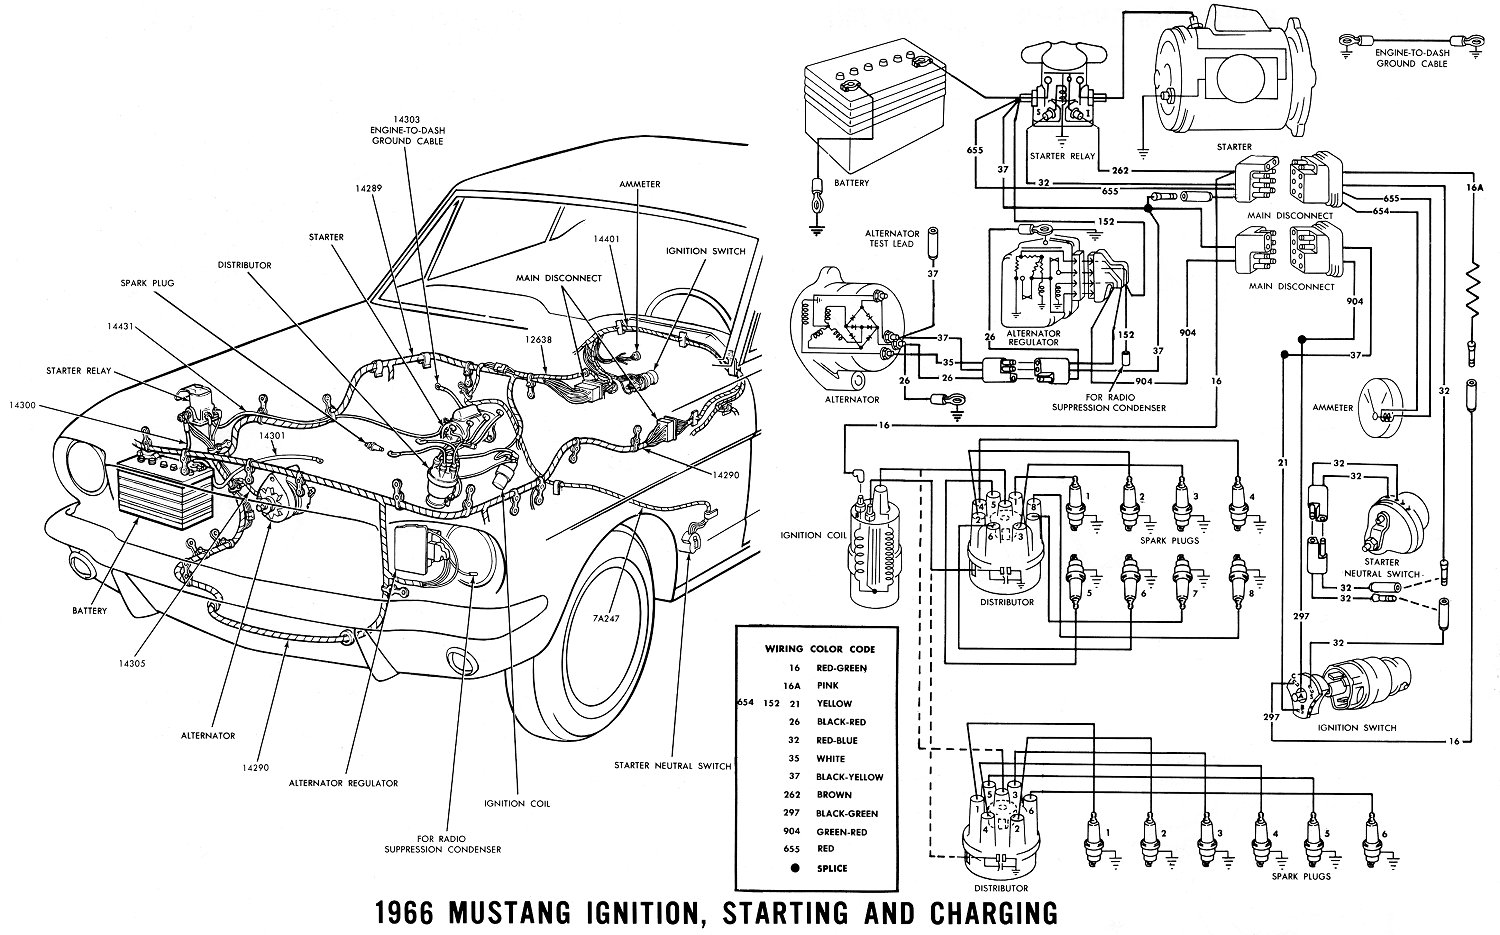 66 Mustang Ignition Wiring Diagram Free Crochet Square Pattern Lelu 39s 1966 Diagrams